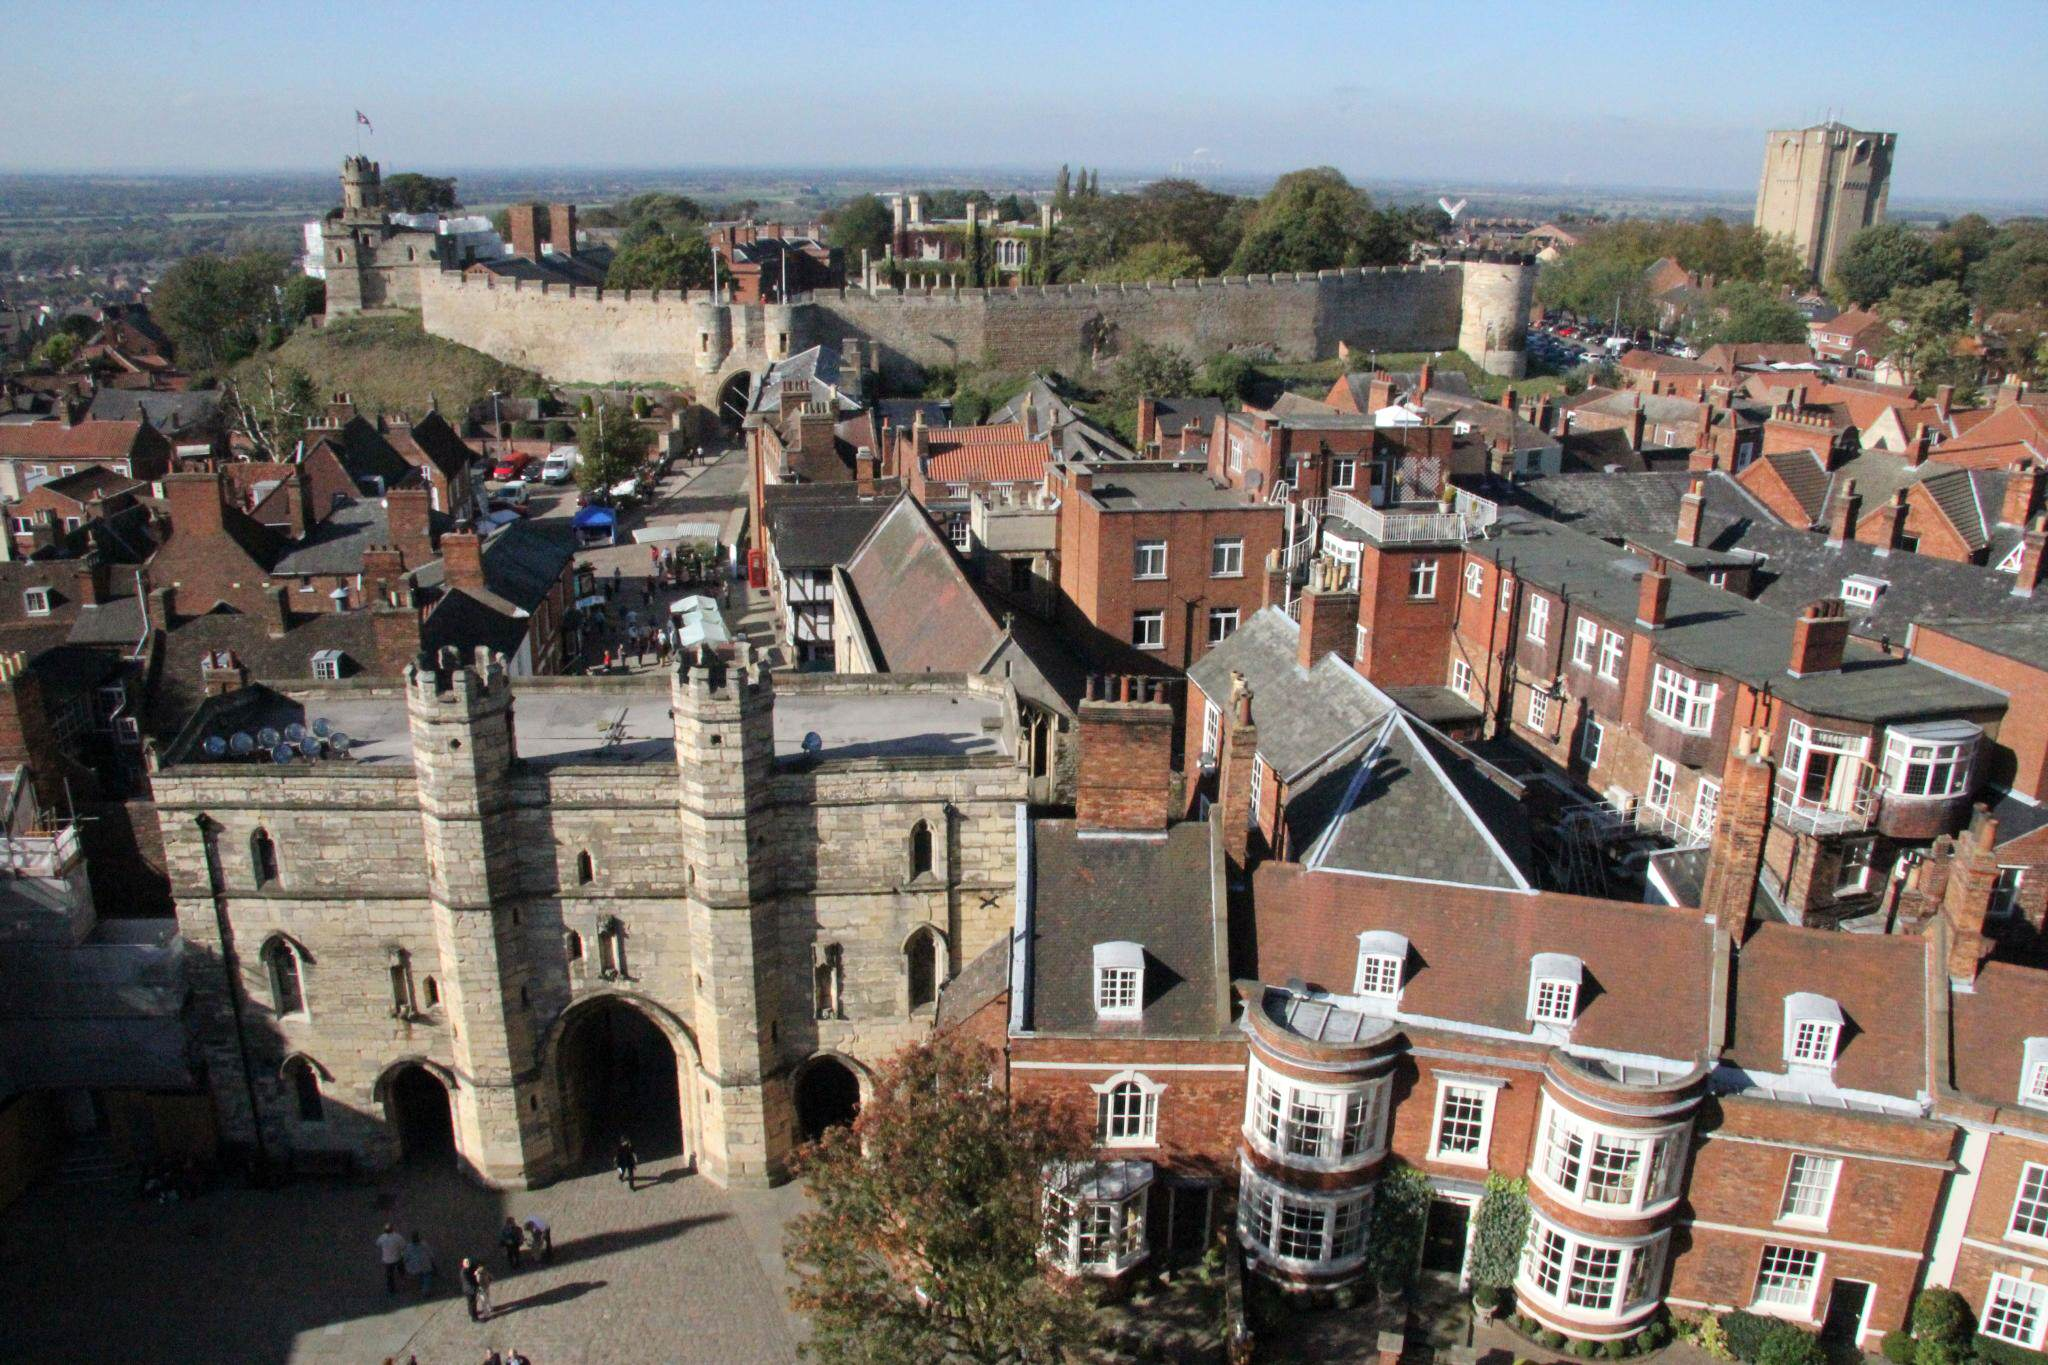 The UKs First Ban On Legal Highs Kicks In Today Lincoln Castle view